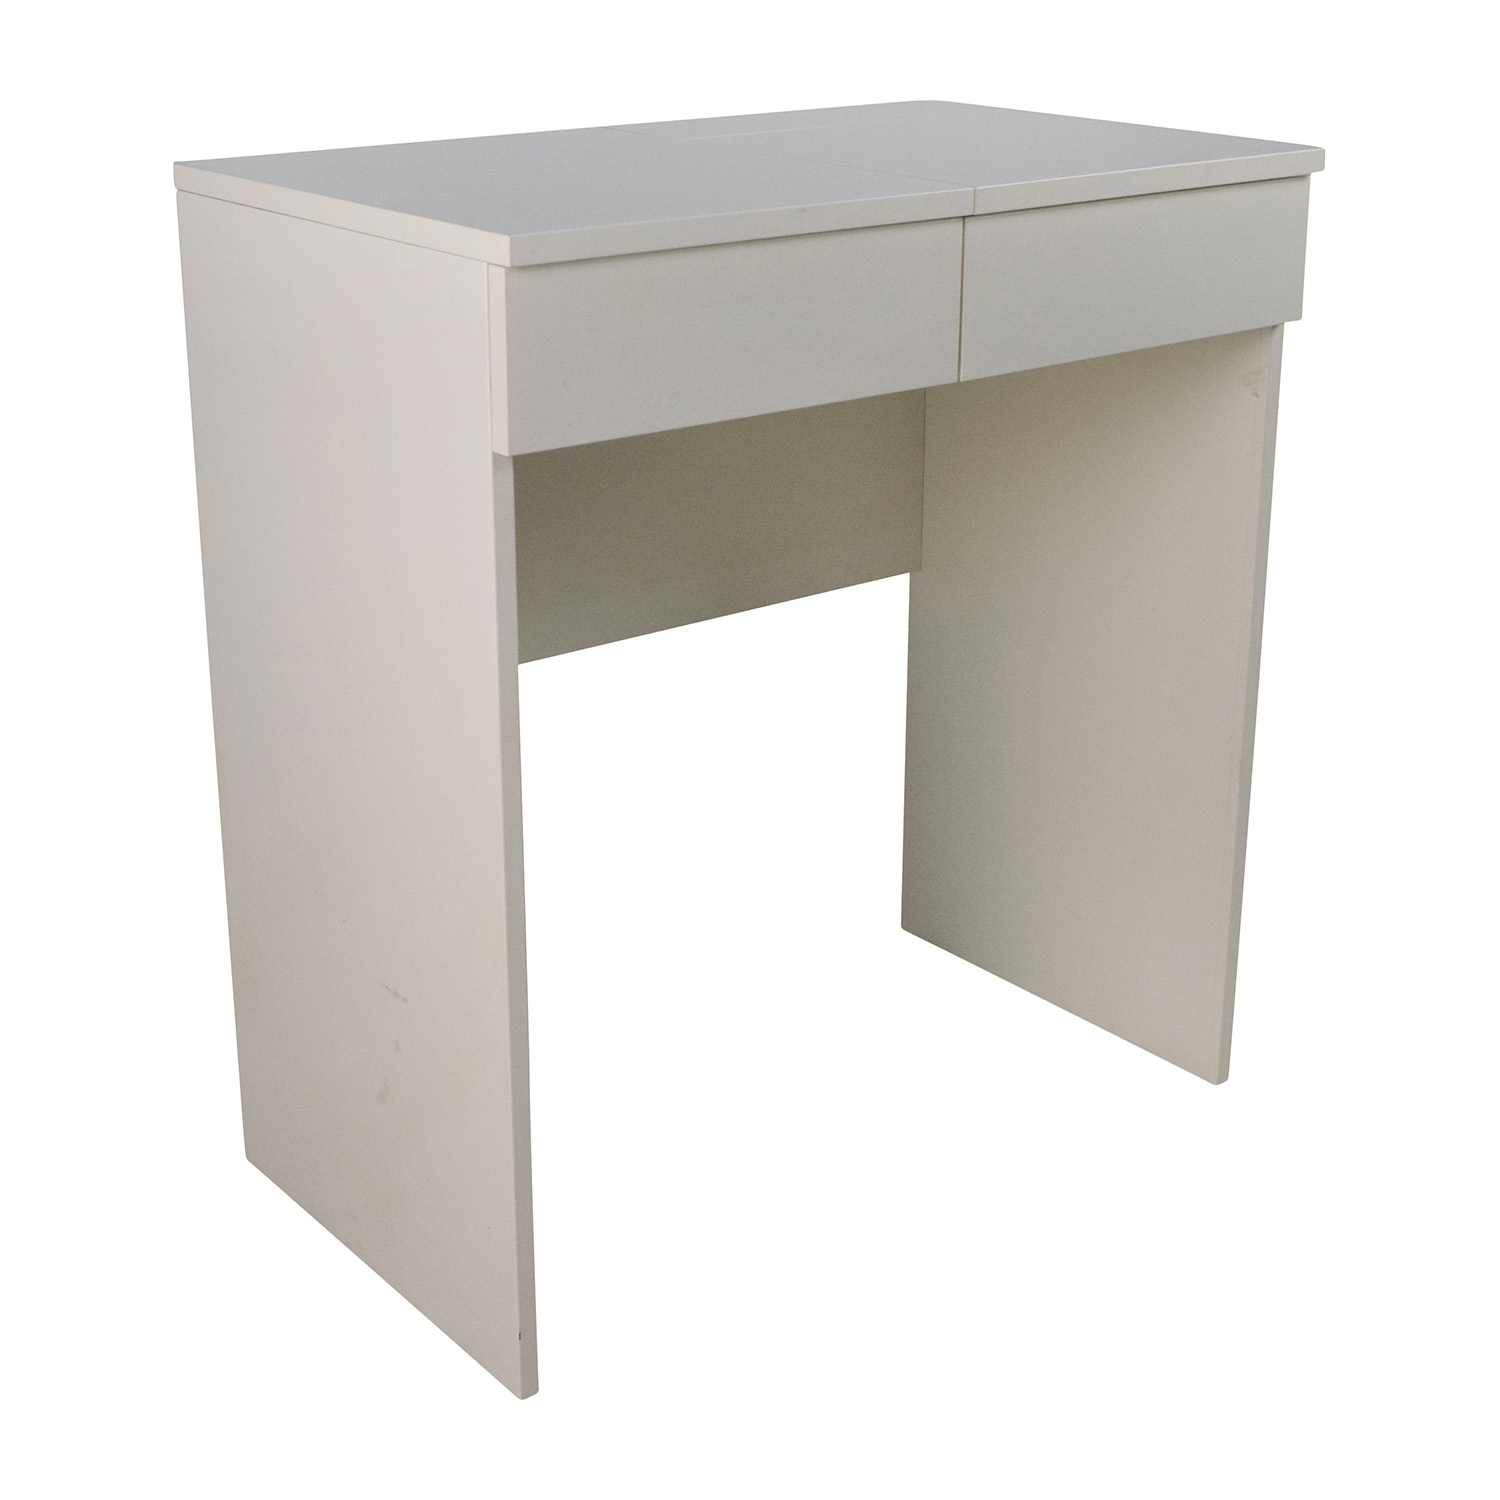 53 off ikea ikea white vanity table tables for Vanity tables ikea